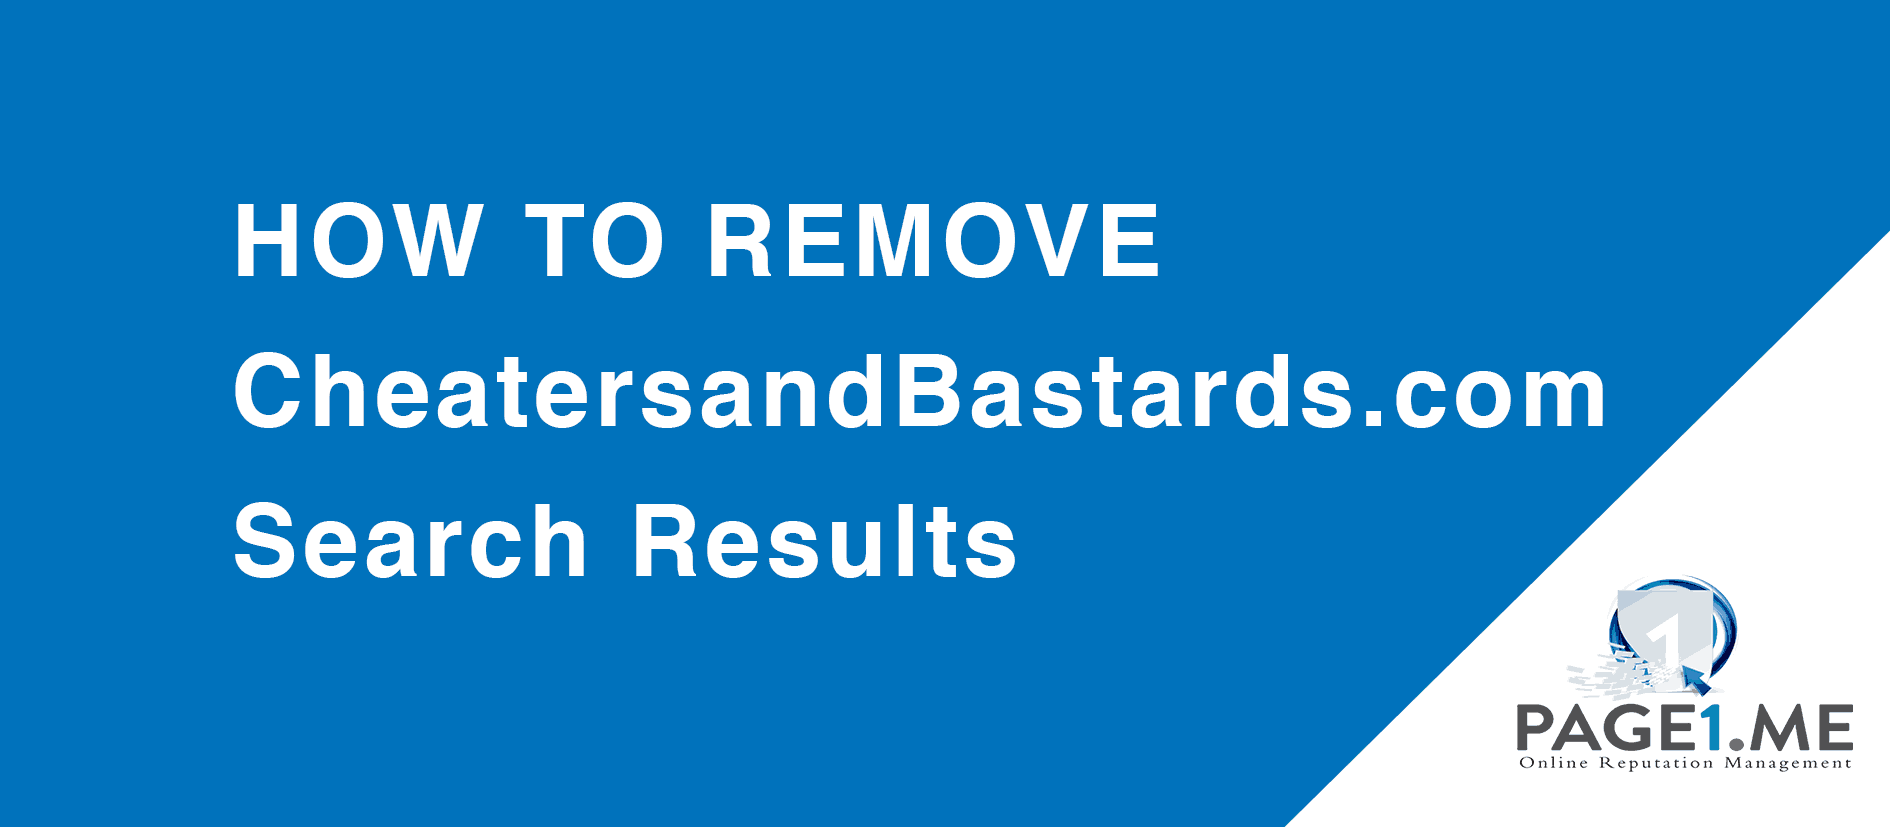 How to remove CheatersandBastards.com Search Results